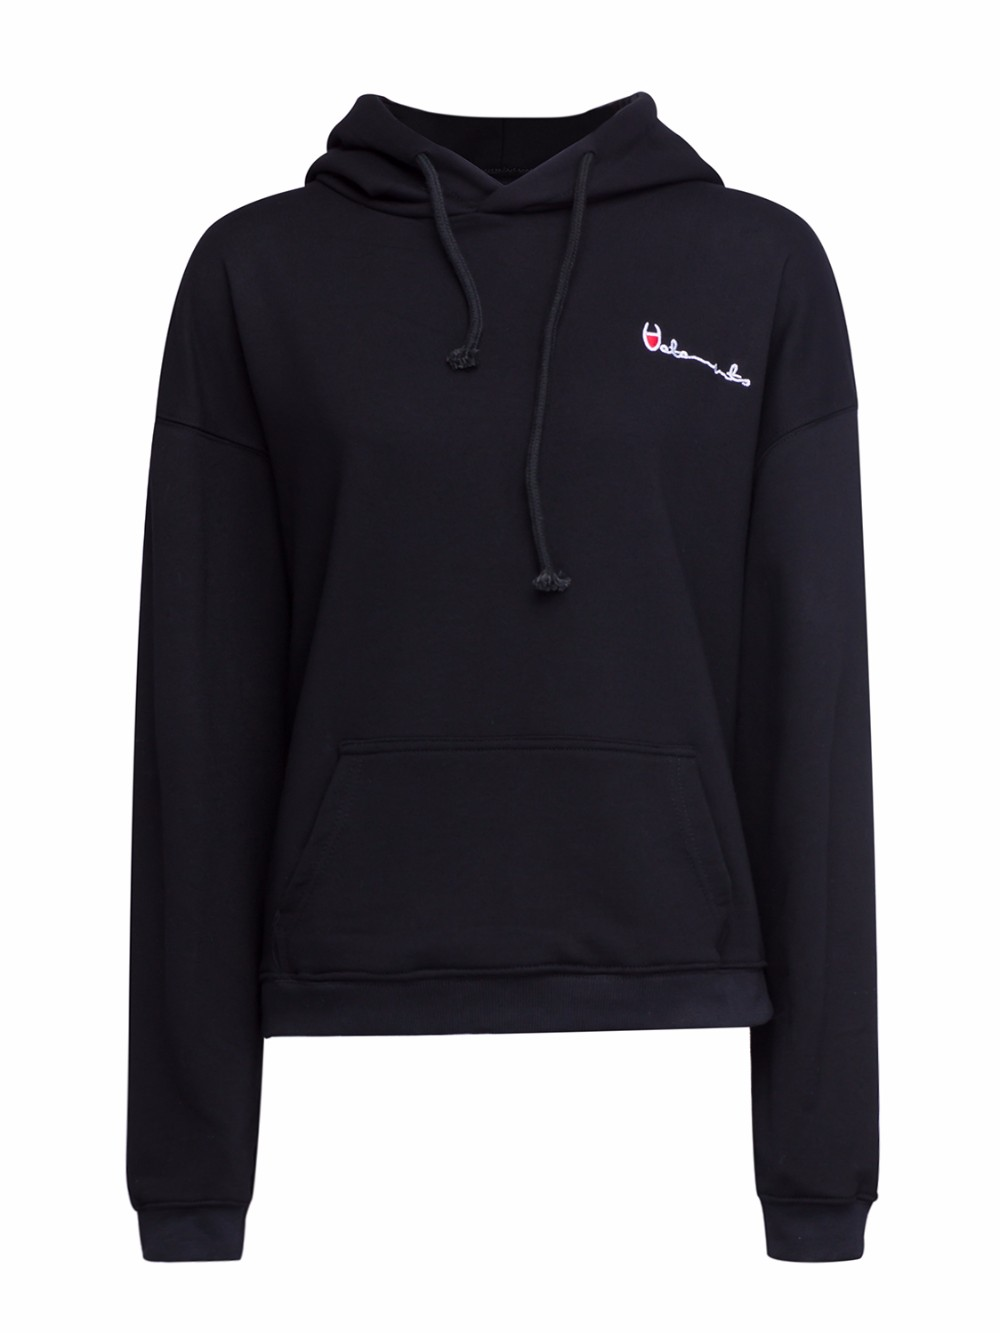 Buy low price, high quality plain hoodies with worldwide shipping on membhobbdownload-zy.ga